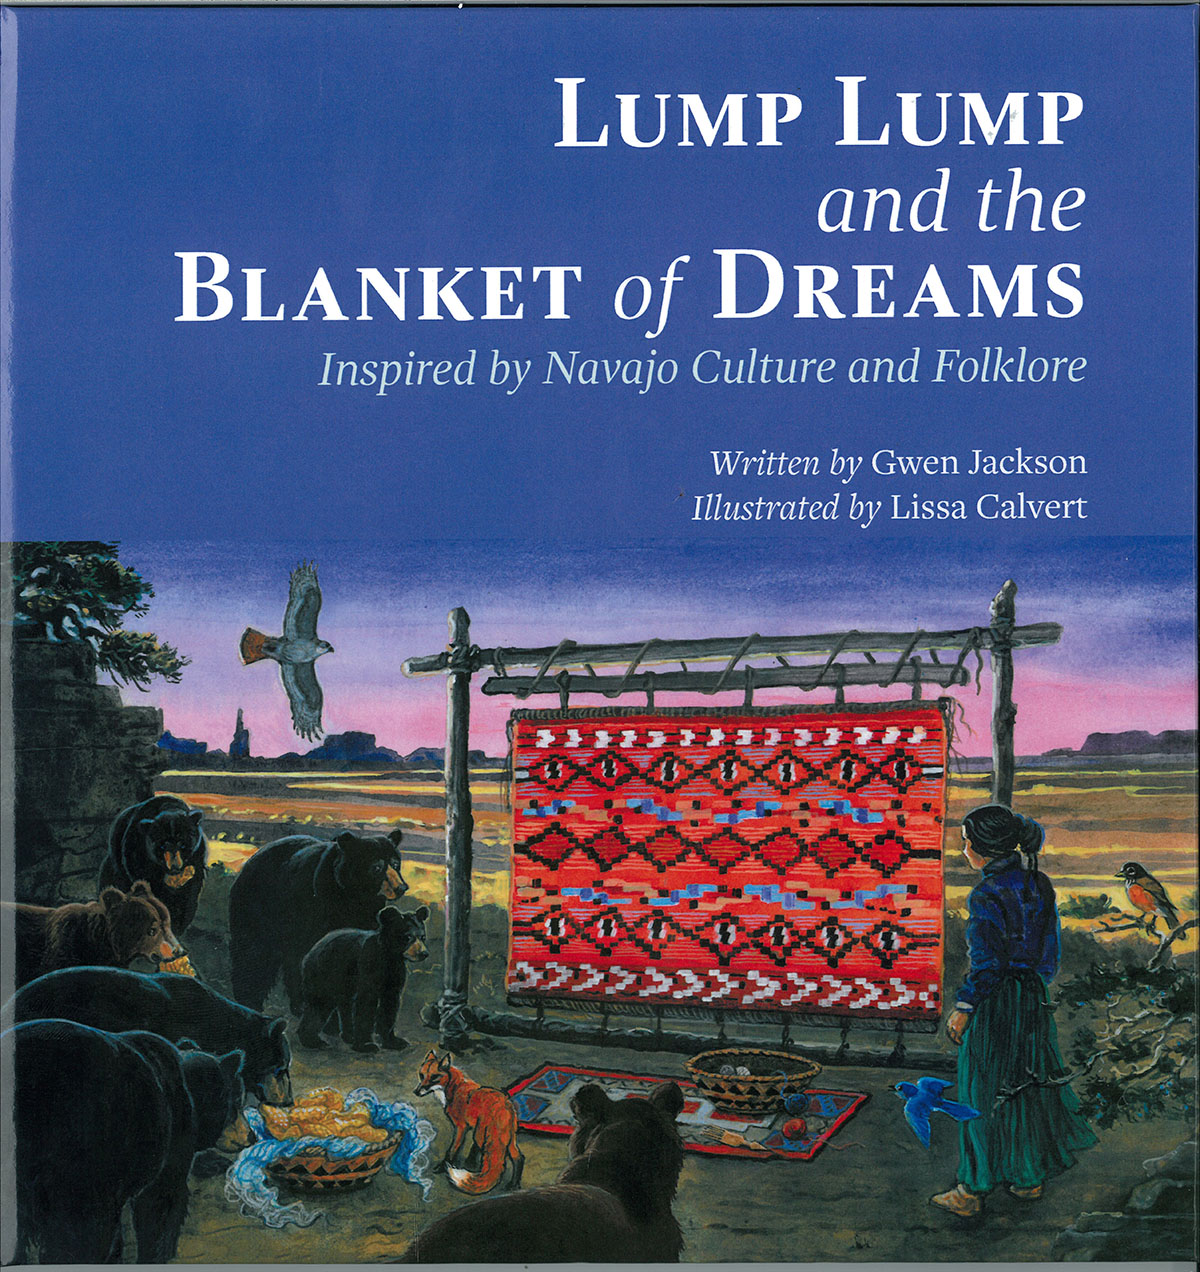 Lump Lump and the Blanket of Dreams:  Inspired by Navajo Culture and Foklore